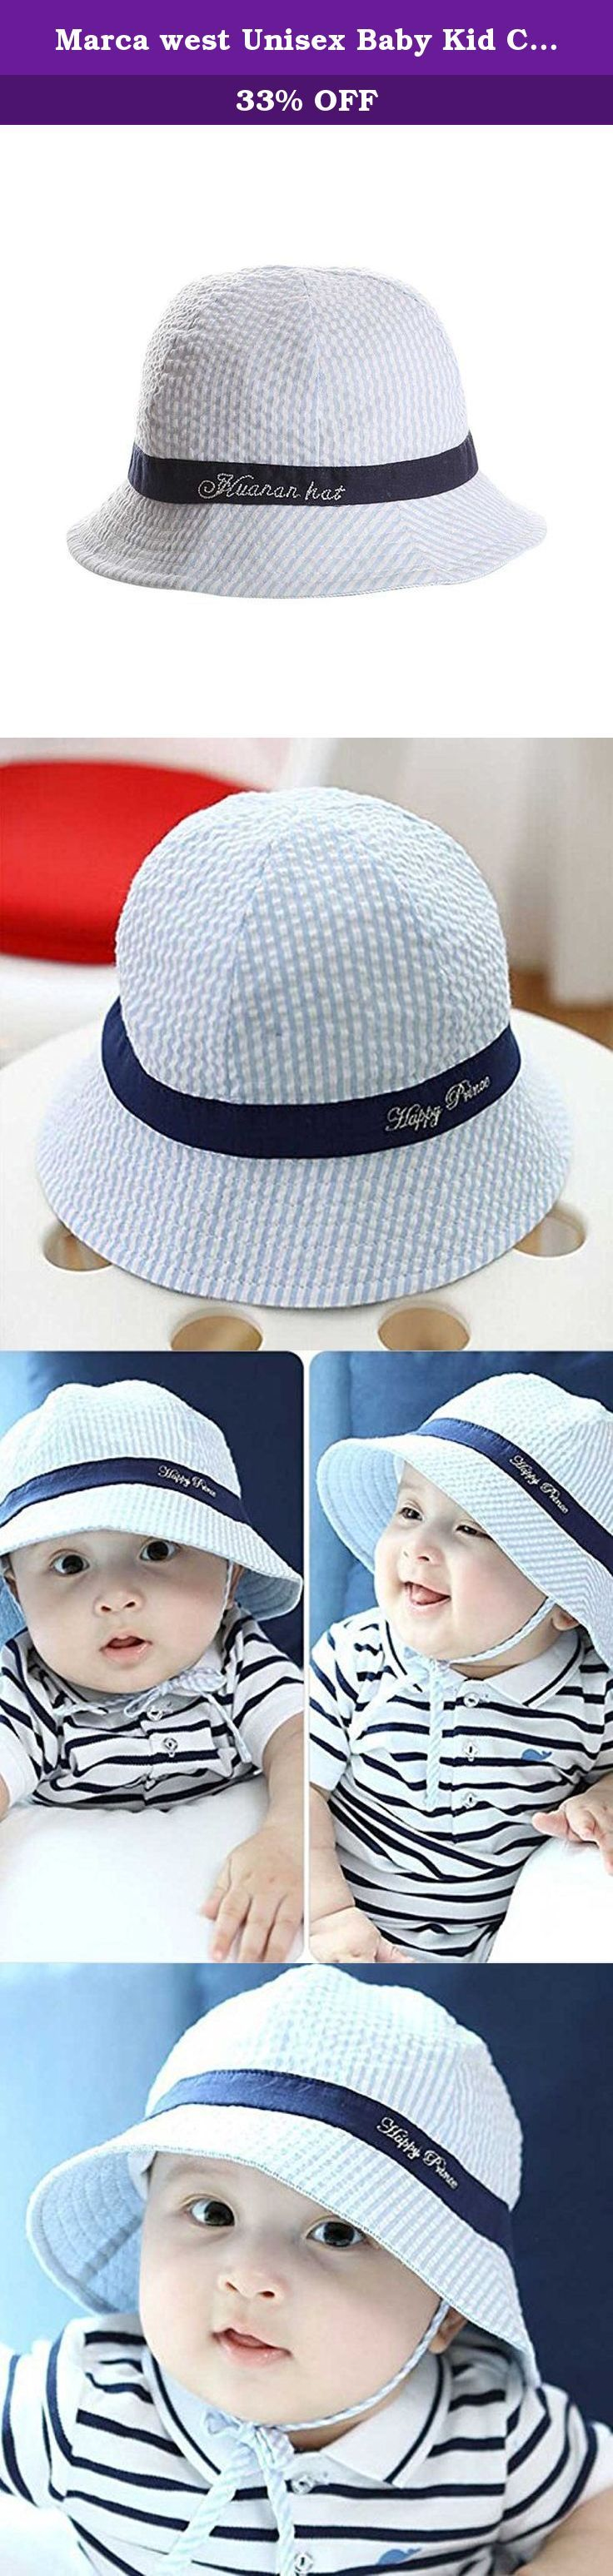 Marca west Unisex Baby Kid Child Toddler Boy Girl Infant Sun Protection Bucket Cap Hat. Warm tips 1.There are slight difference between the picture and the real item caused by light brightness 2.The hat is suitable for infant and maybe its size is a little small,so please refer to the size recommended before purchasing. Service: 1.If you are not satisfied with our product or order wrong item,let us know at the first time,we must reply you in 24 hours. 2.If we make a mistake,we promise to...